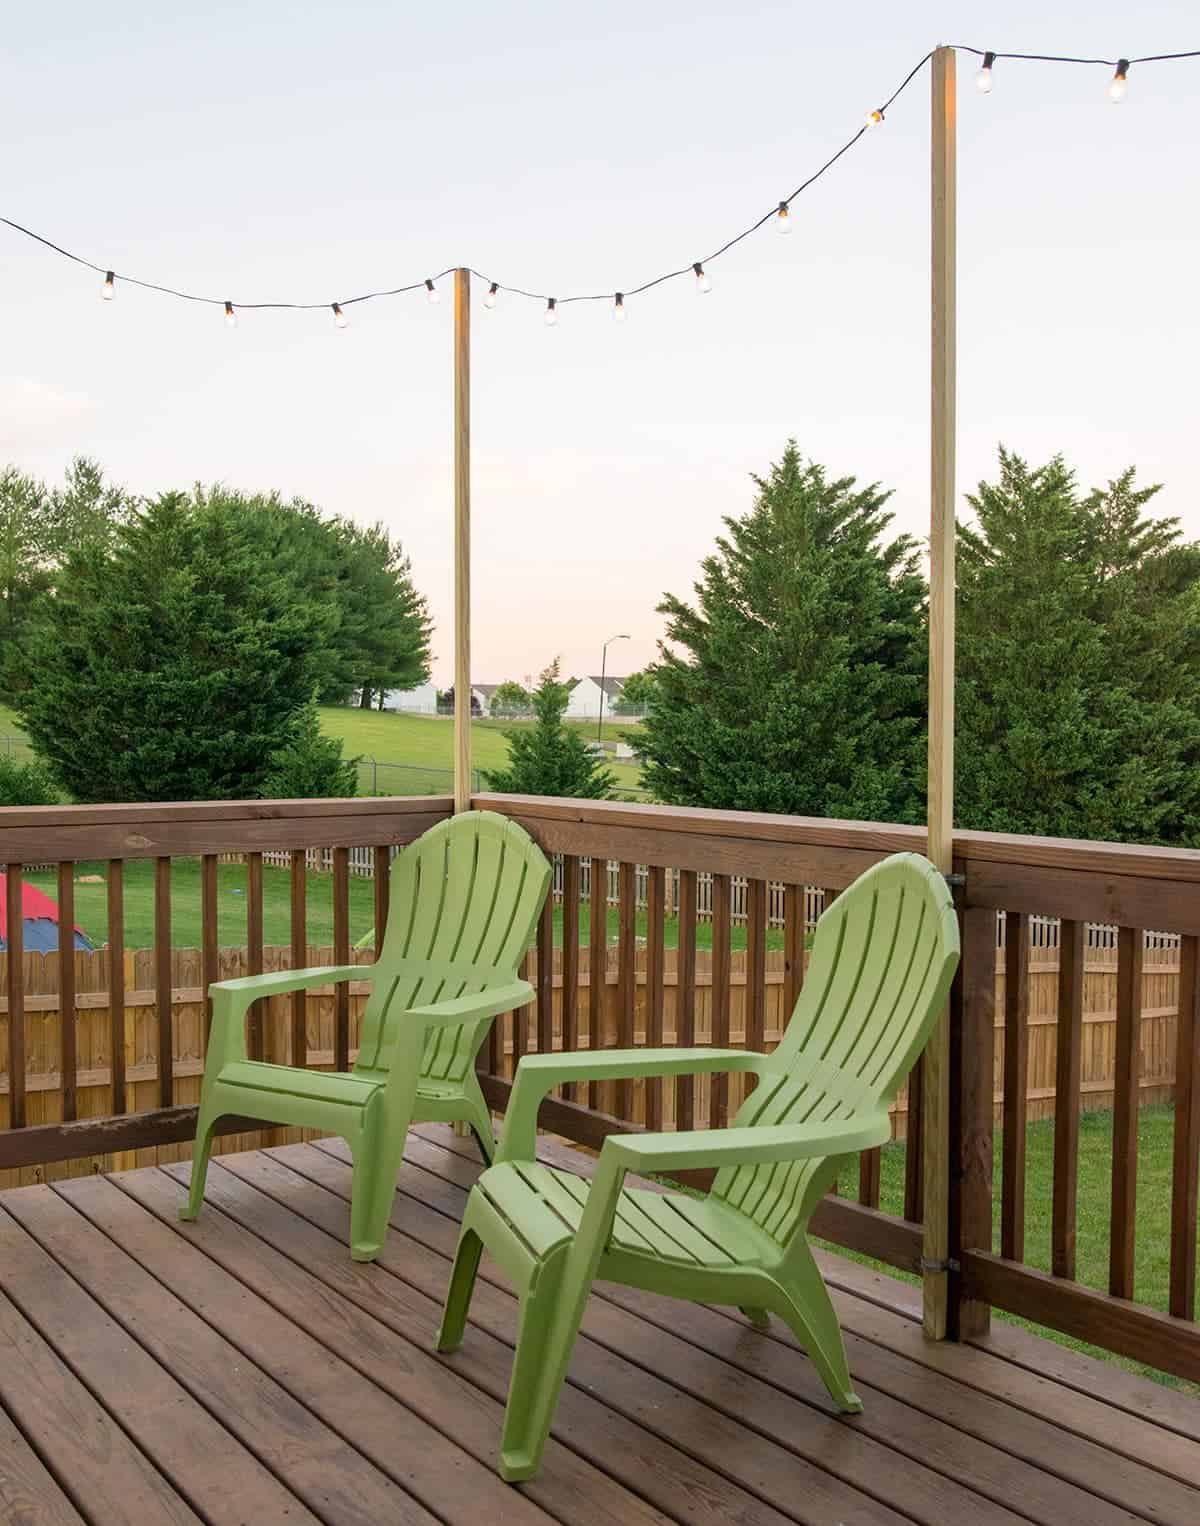 A super easy DIY way to hang outdoor string lights when you don't have a covered deck or pergola. The warm summer nights on your deck with this lighting will create the perfect ambiance for a party or enjoying the sunset.